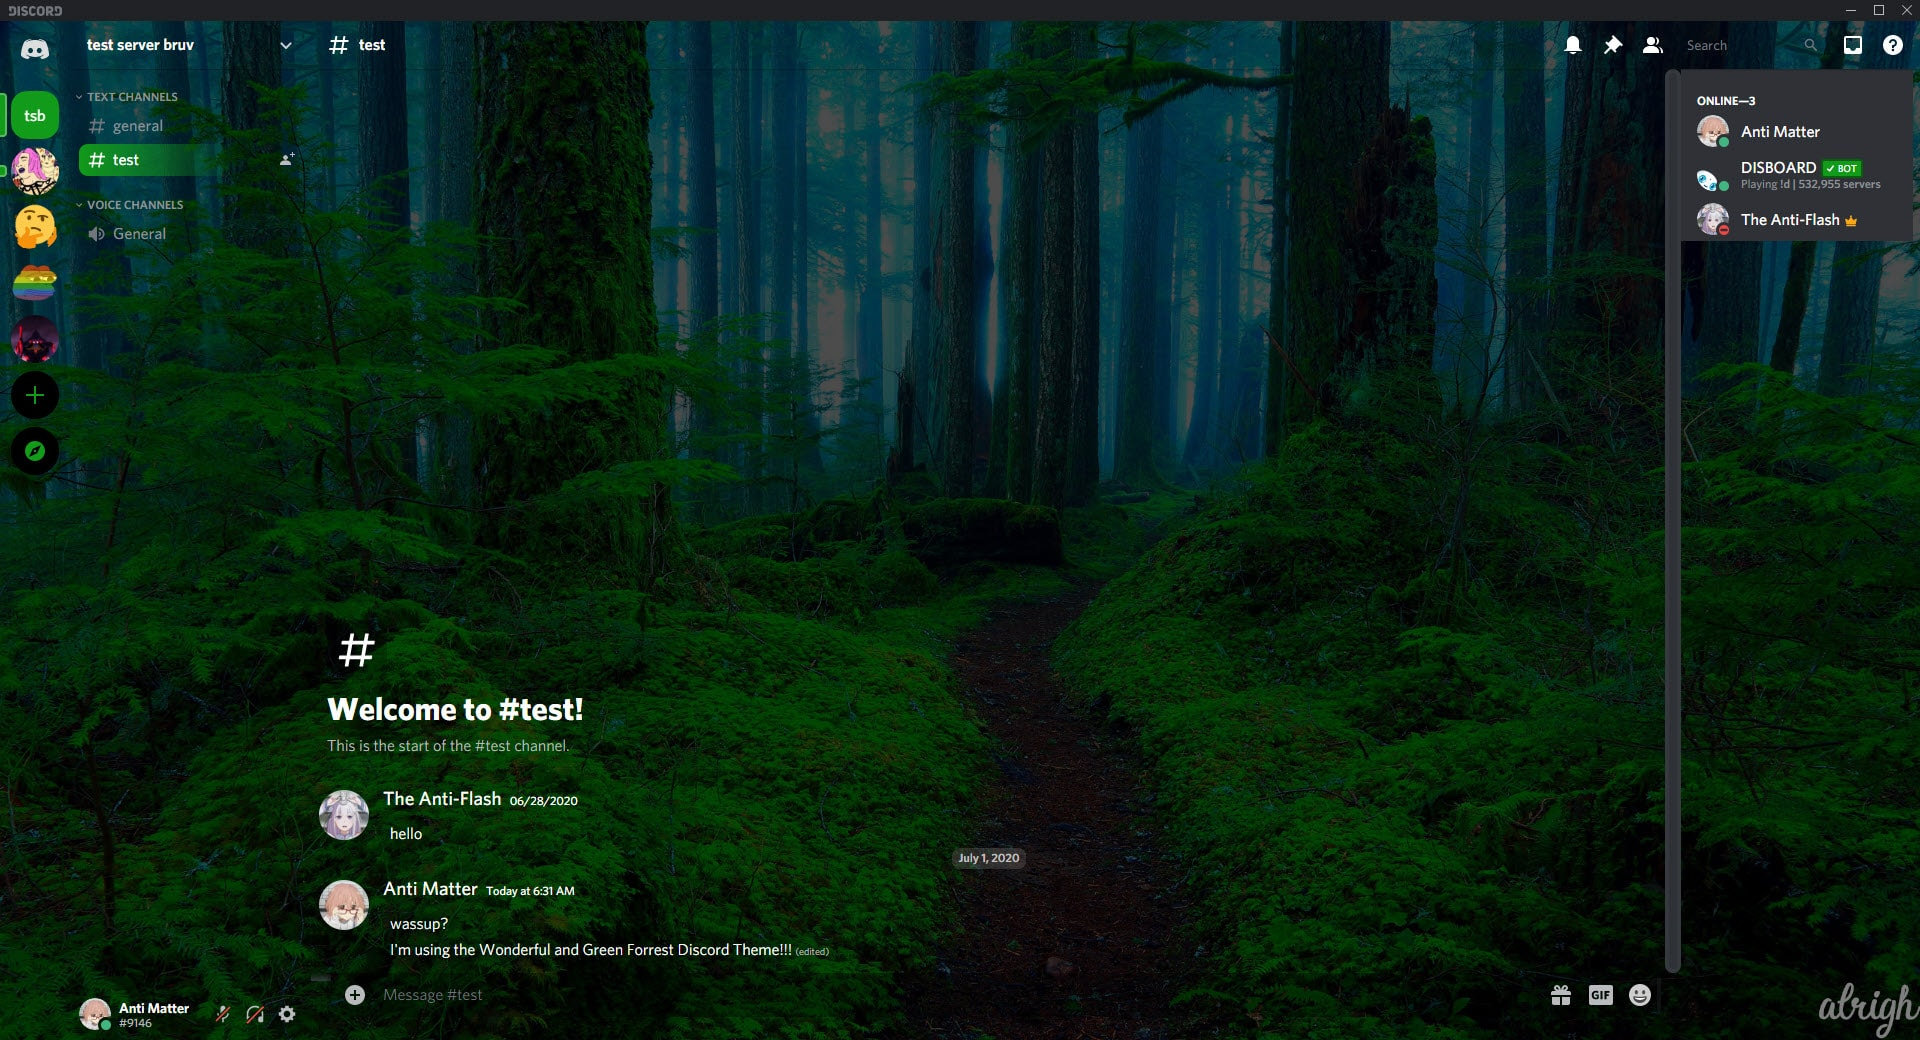 Wonderful and Green Forrest Discord Theme